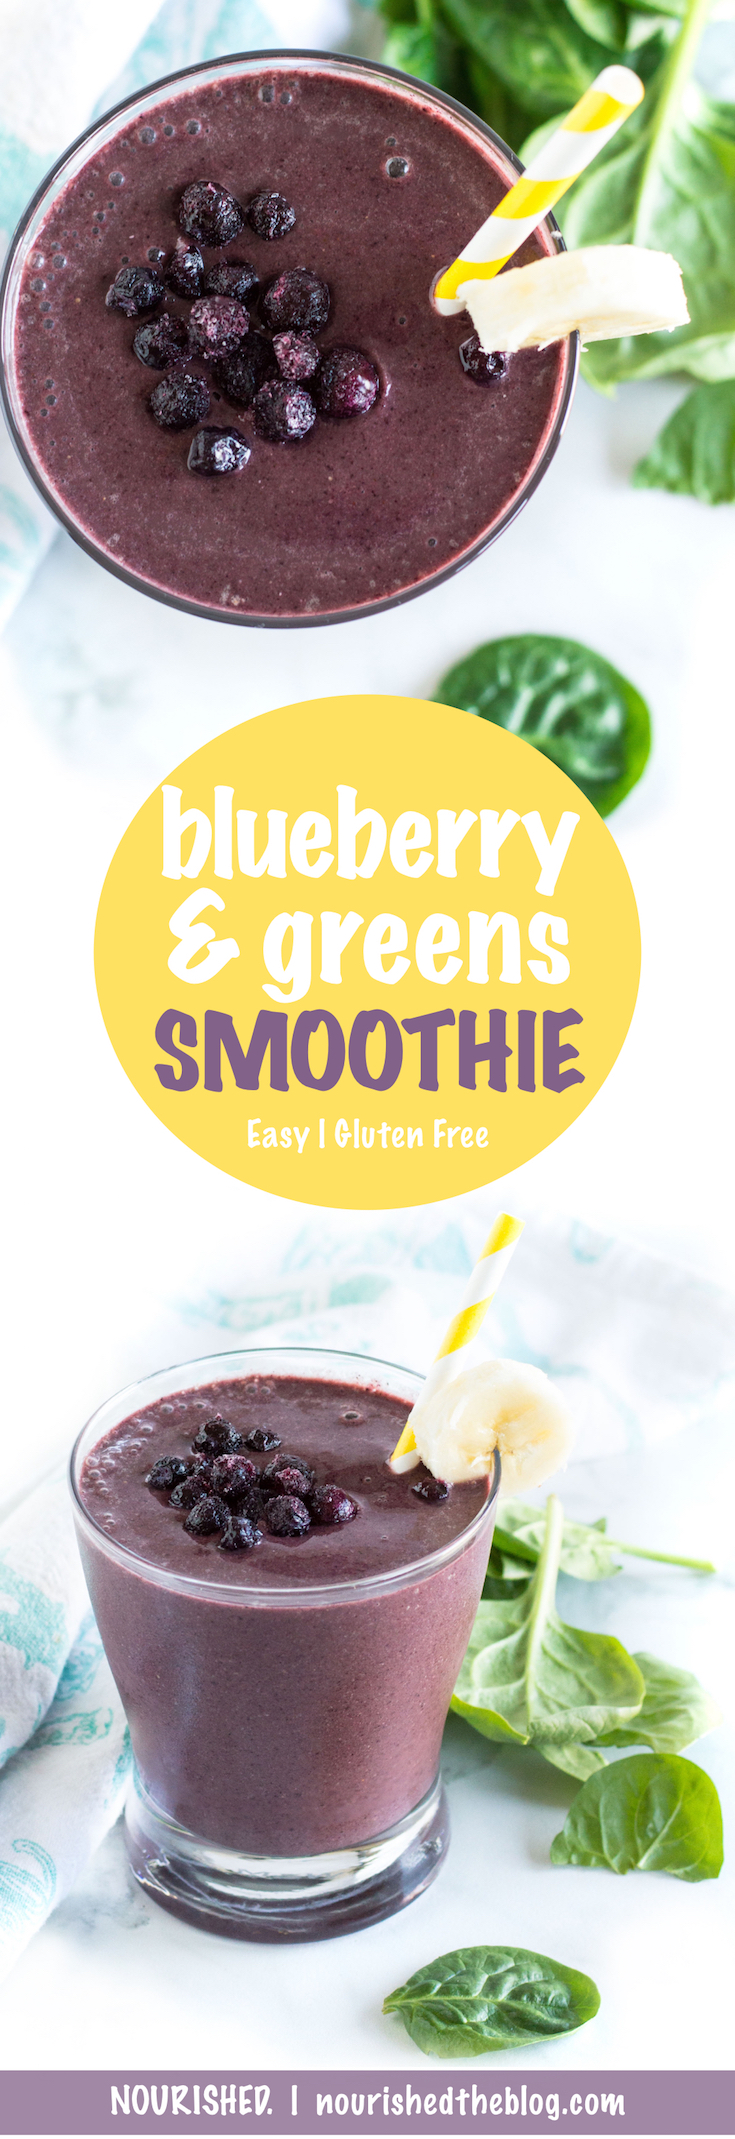 Superfood Smoothie | Blueberry and Greens Smoothie | recipe | gluten free, vegetarian, easy to make | green smoothie | And you can't even taste the spinach!